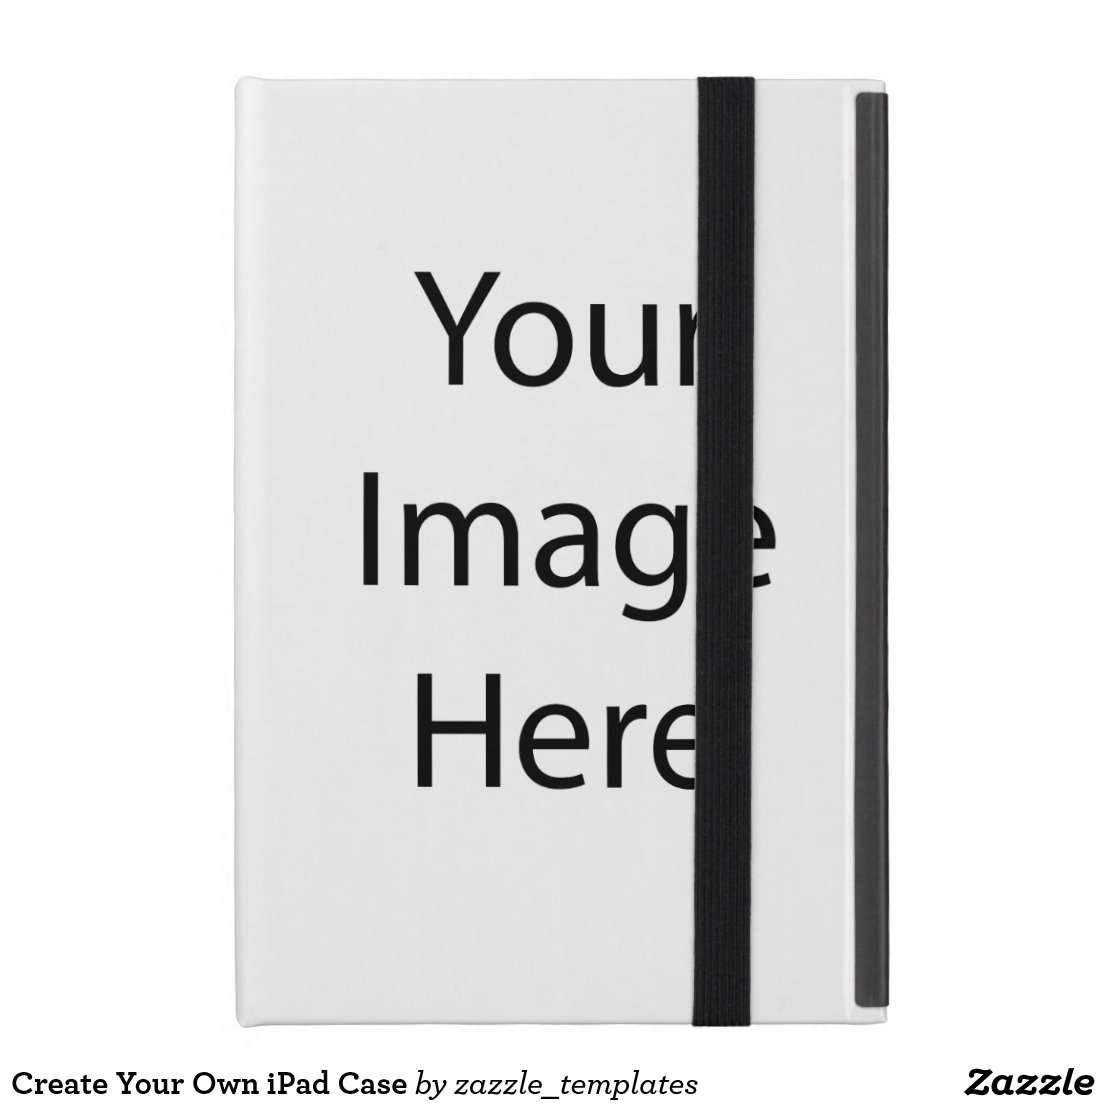 Create Your Own iPad Case